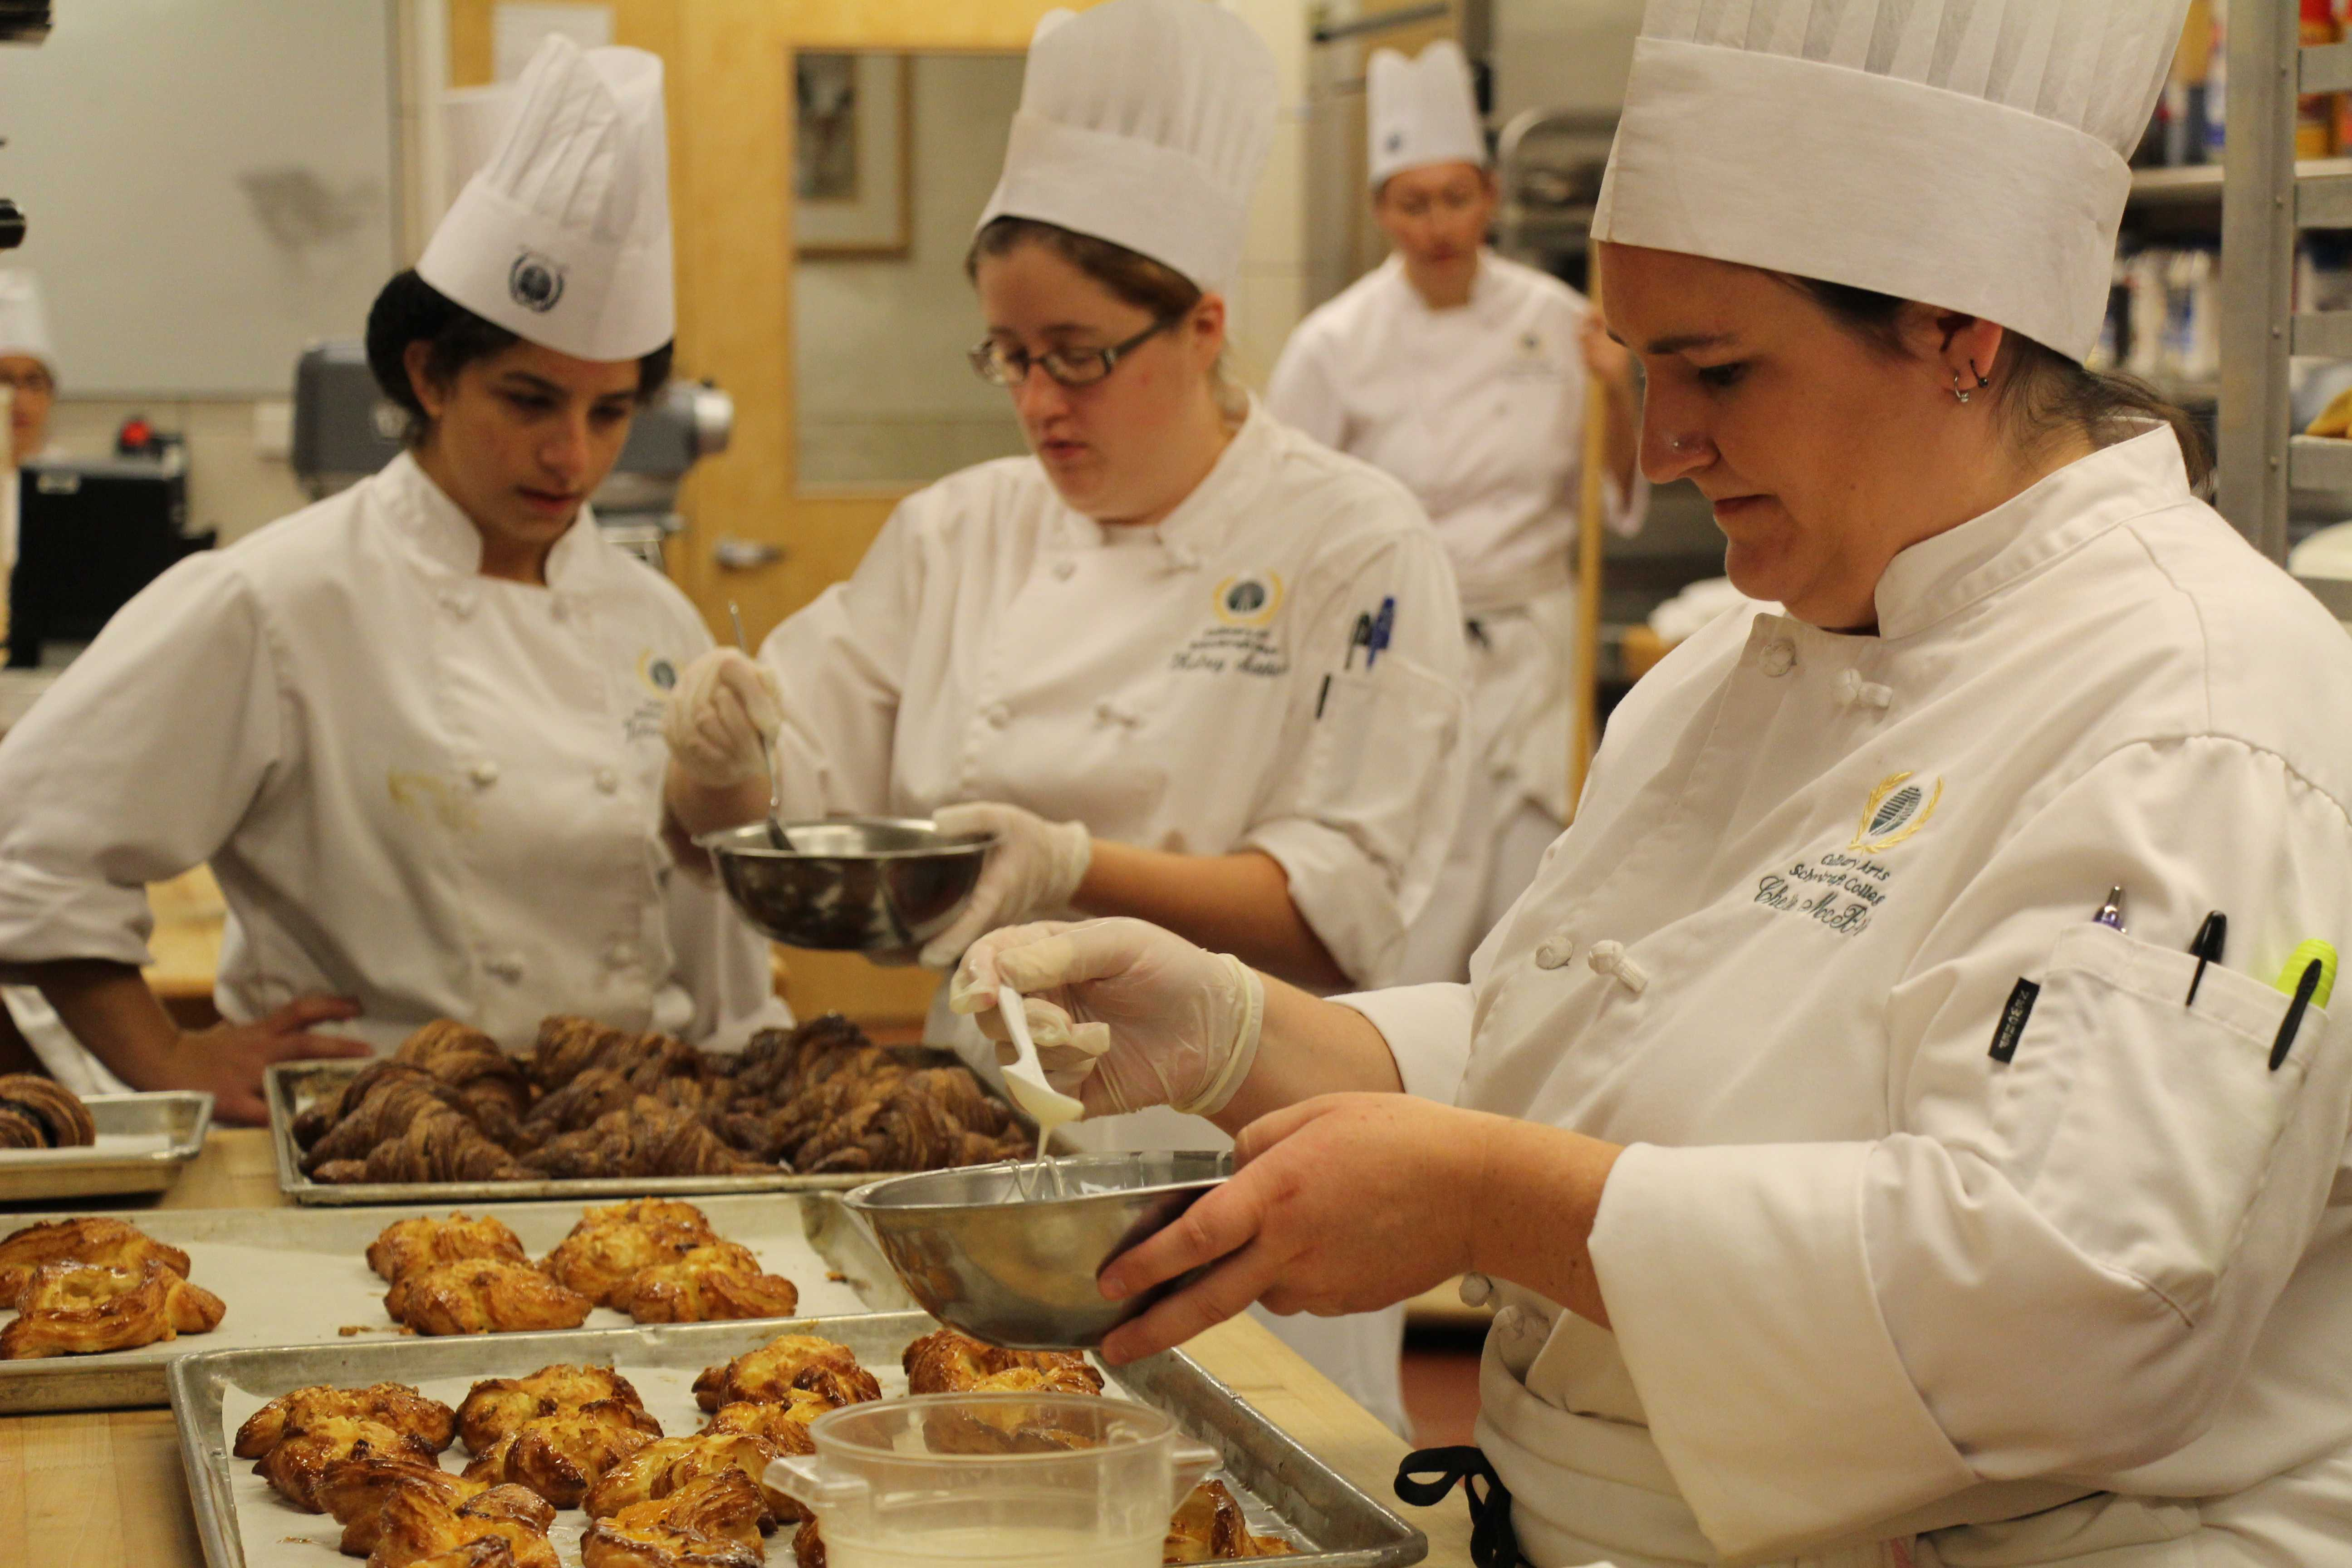 (From left to right) Julianna Nicholas, Kelsey Mathias, and Cherie McBride put the finishing touches on pastries that will be served at the American Harvest Resturant in the VistaTech Building later in the day. Photo by Nathan Gartner.